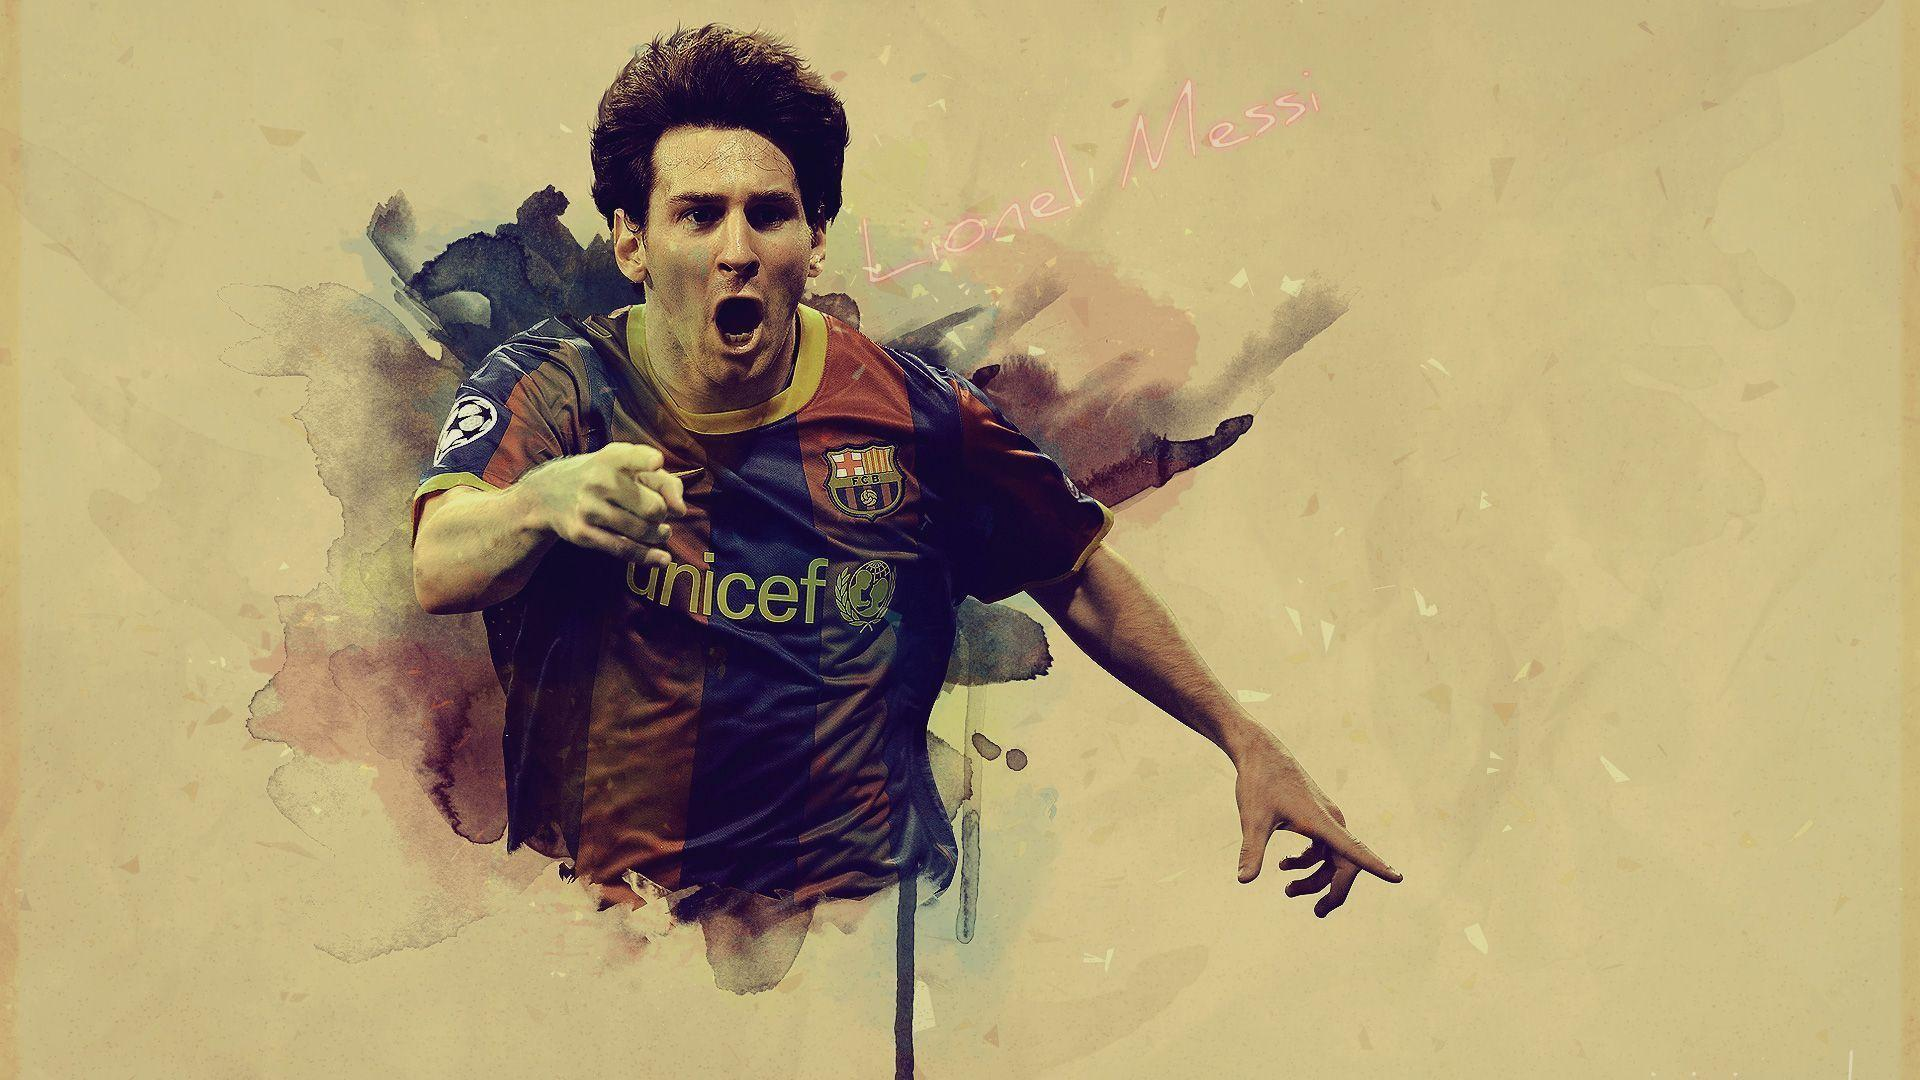 Messi Wallpapers - Celebrities Wallpapers (7833) ilikewalls.